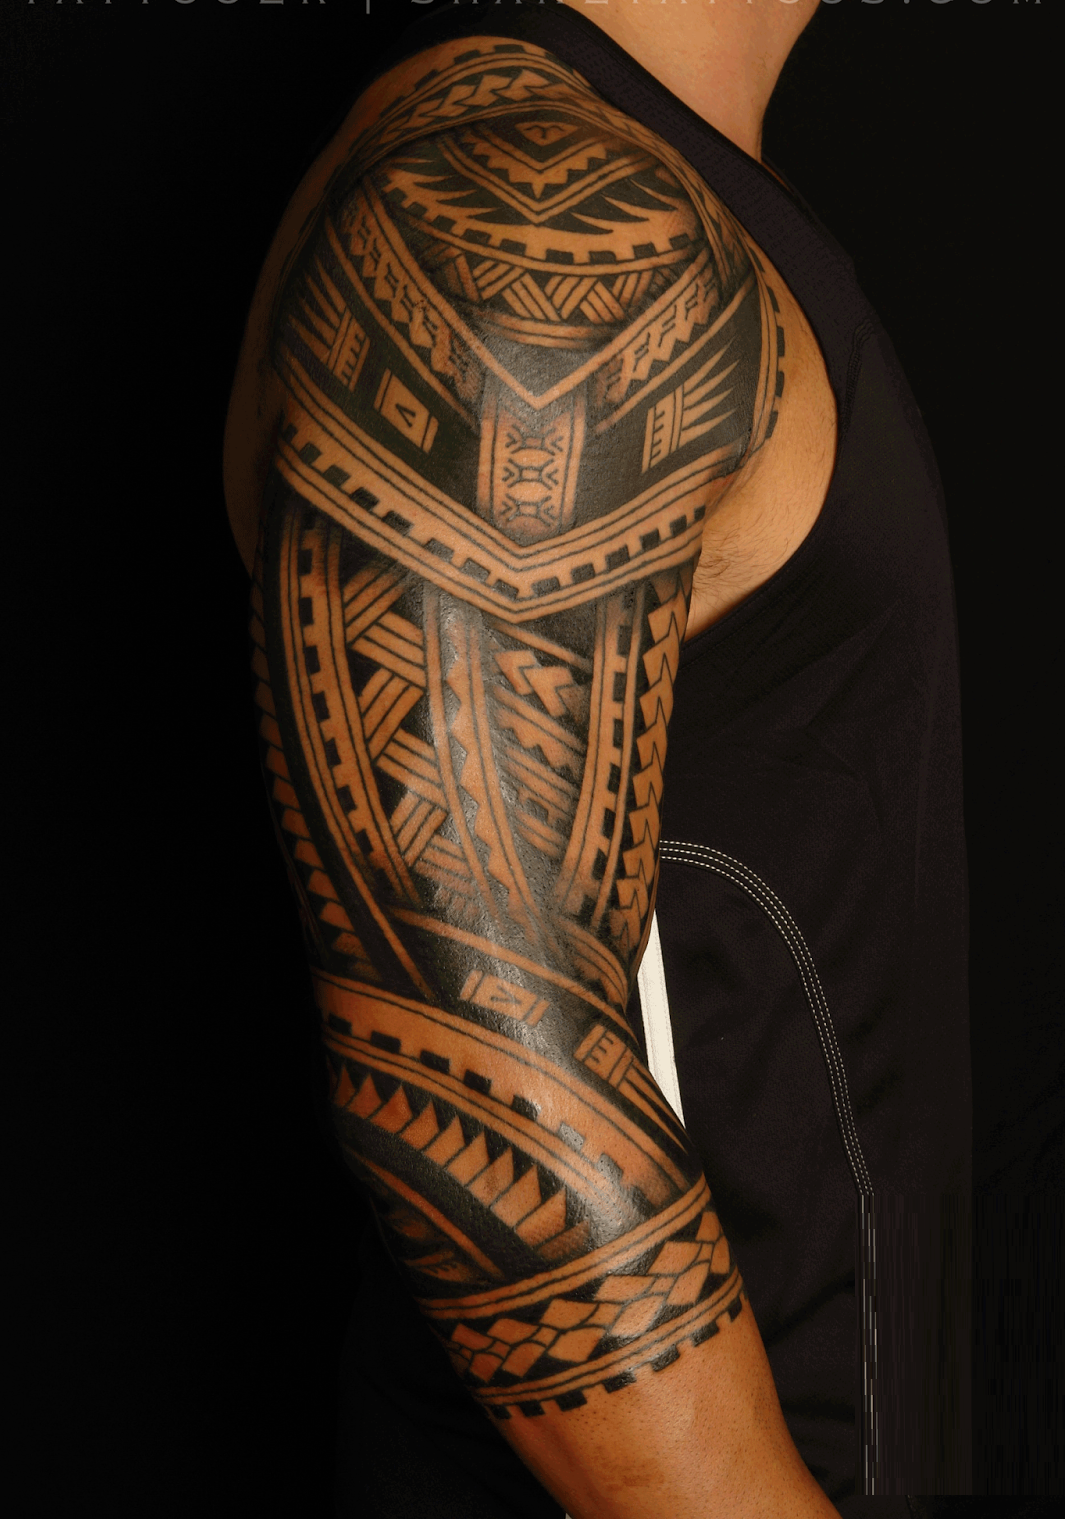 faux tatouage maori tatouage polynesien maori pinterest faux tatouages tatouages maoris. Black Bedroom Furniture Sets. Home Design Ideas